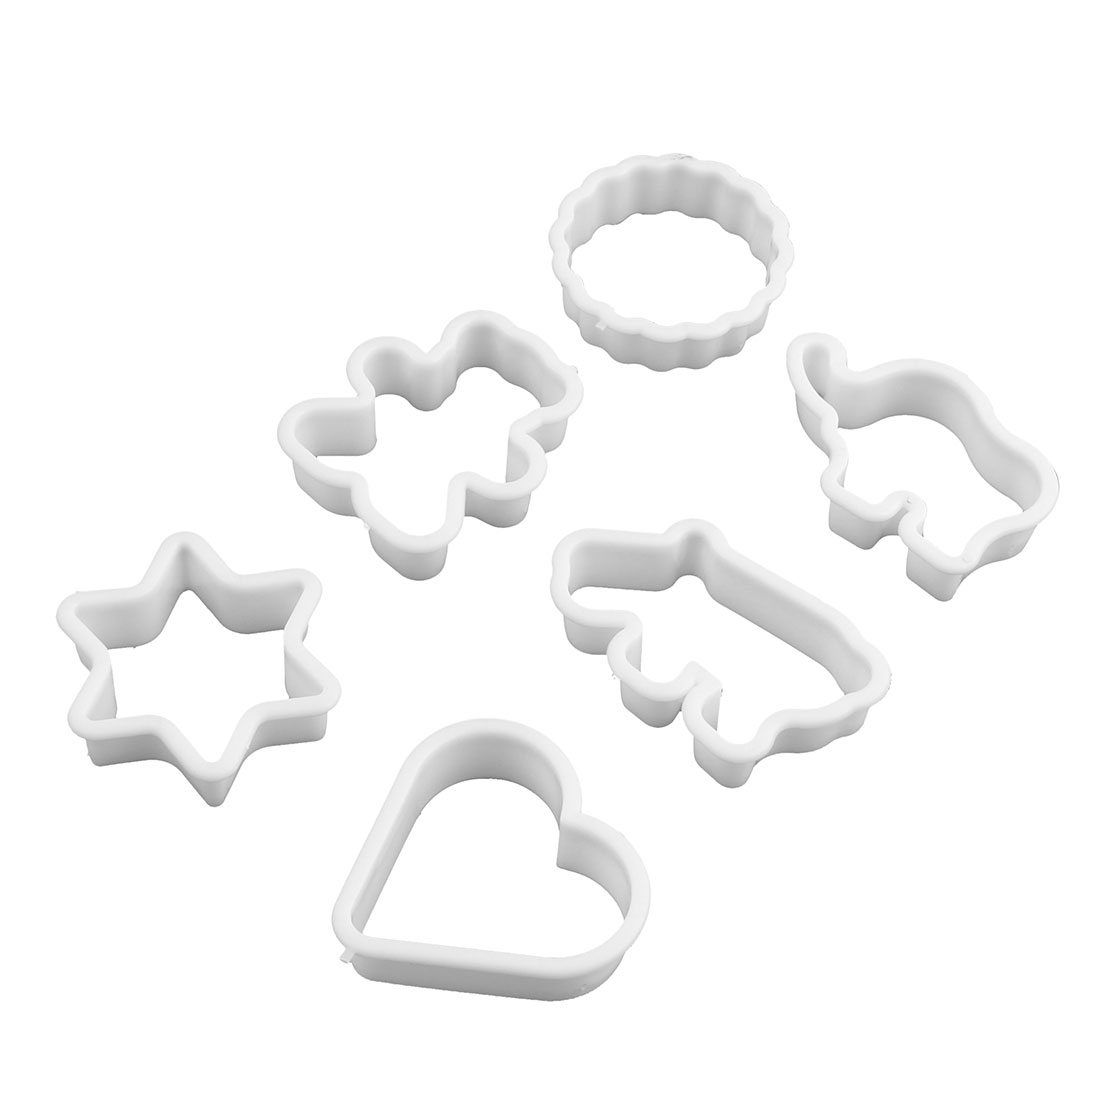 Household Kitchen Plastic Cake Pastry DIY Cookie Decor Mould White 6 in 1